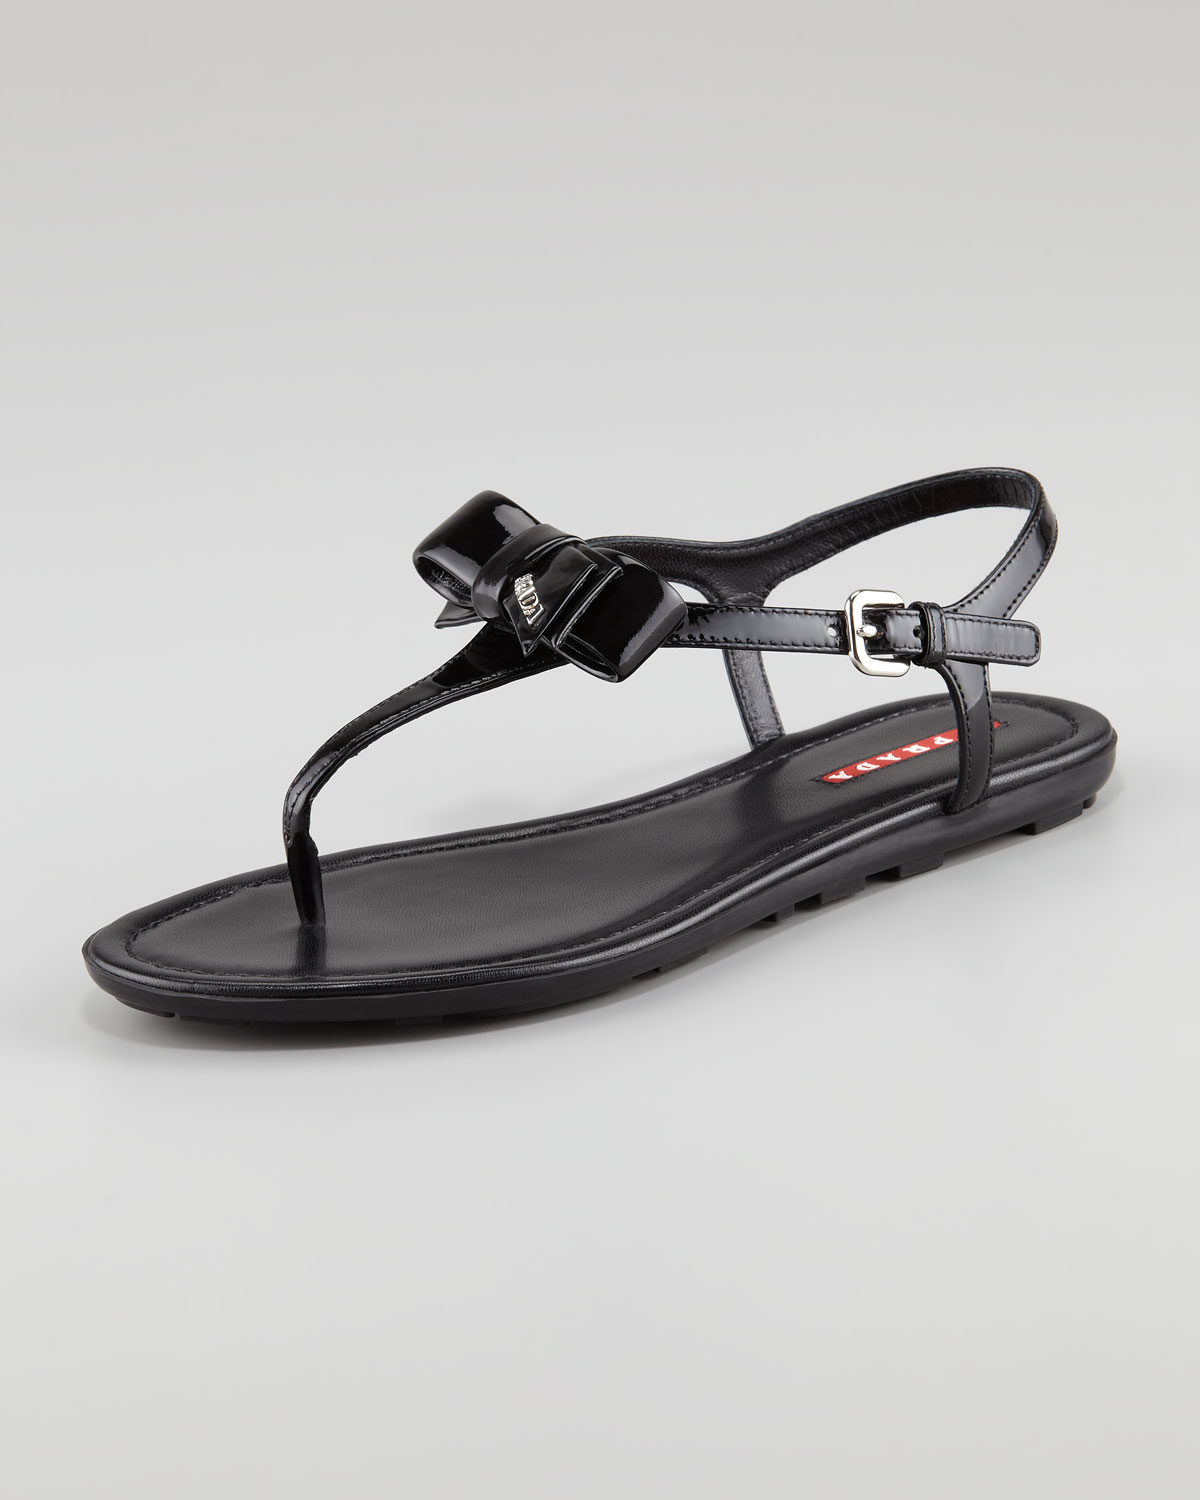 018075b70fdc75 Lyst - Prada Patent Leather Bow Thong Sandal in Black